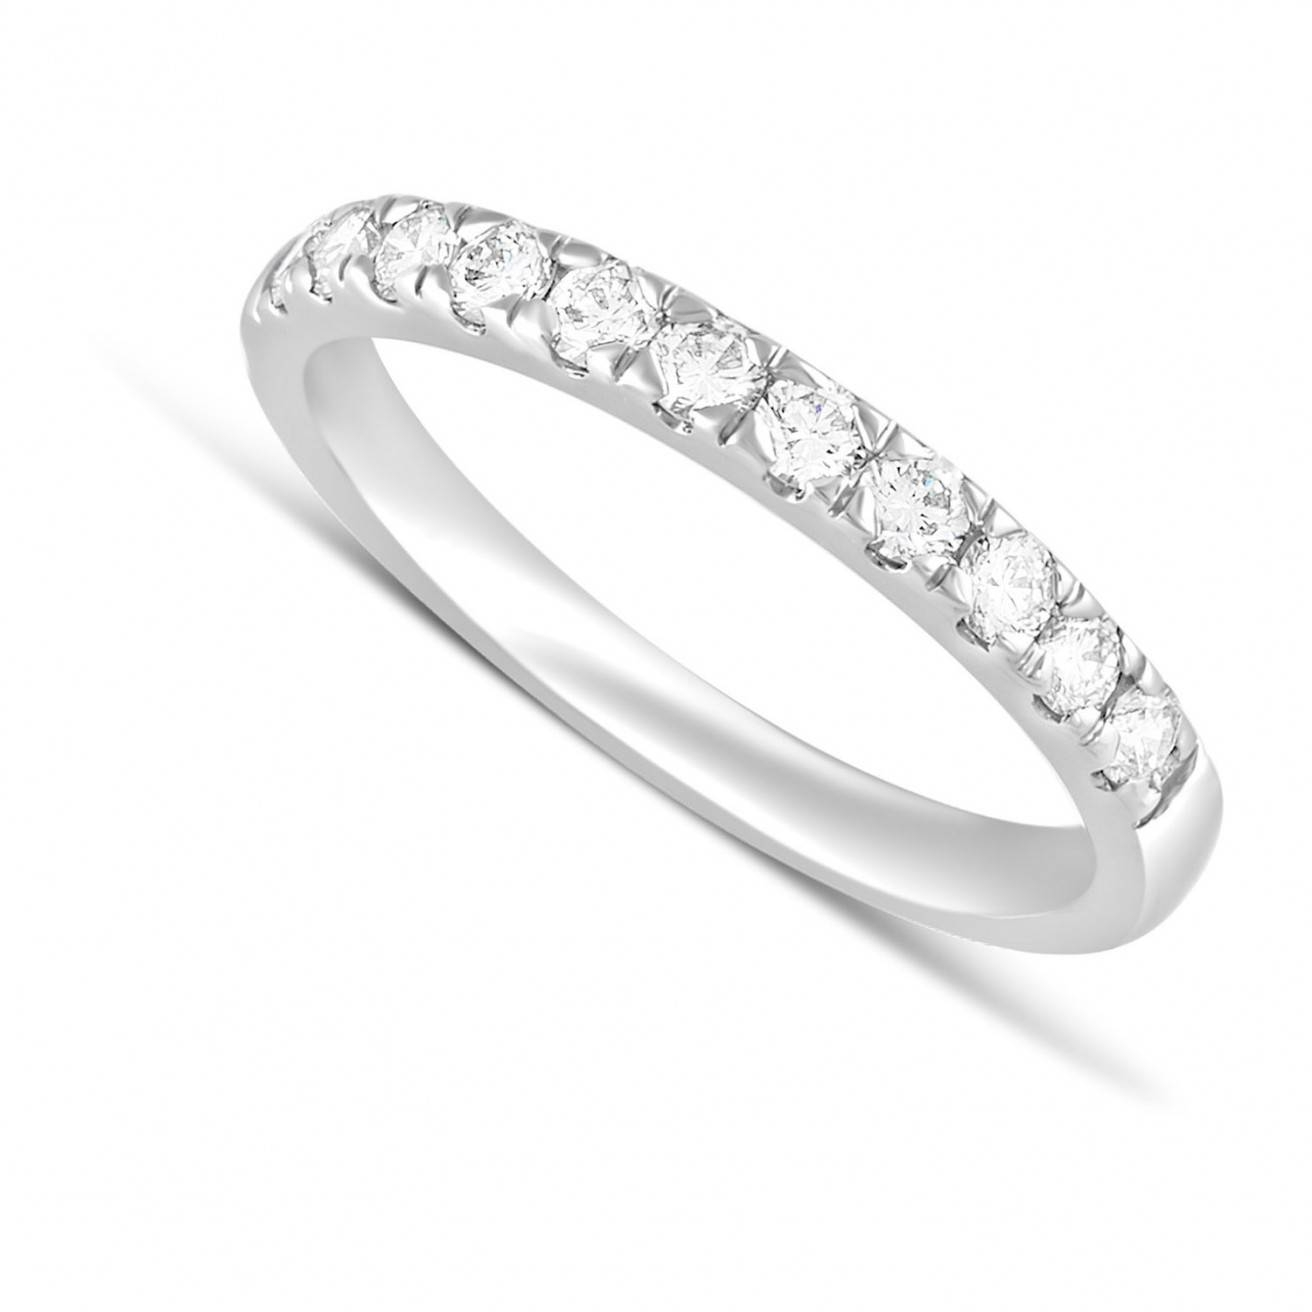 Buy Platinum Wedding Bands Online – Fraser Hart In Platinum Diamond Wedding Rings (View 3 of 15)